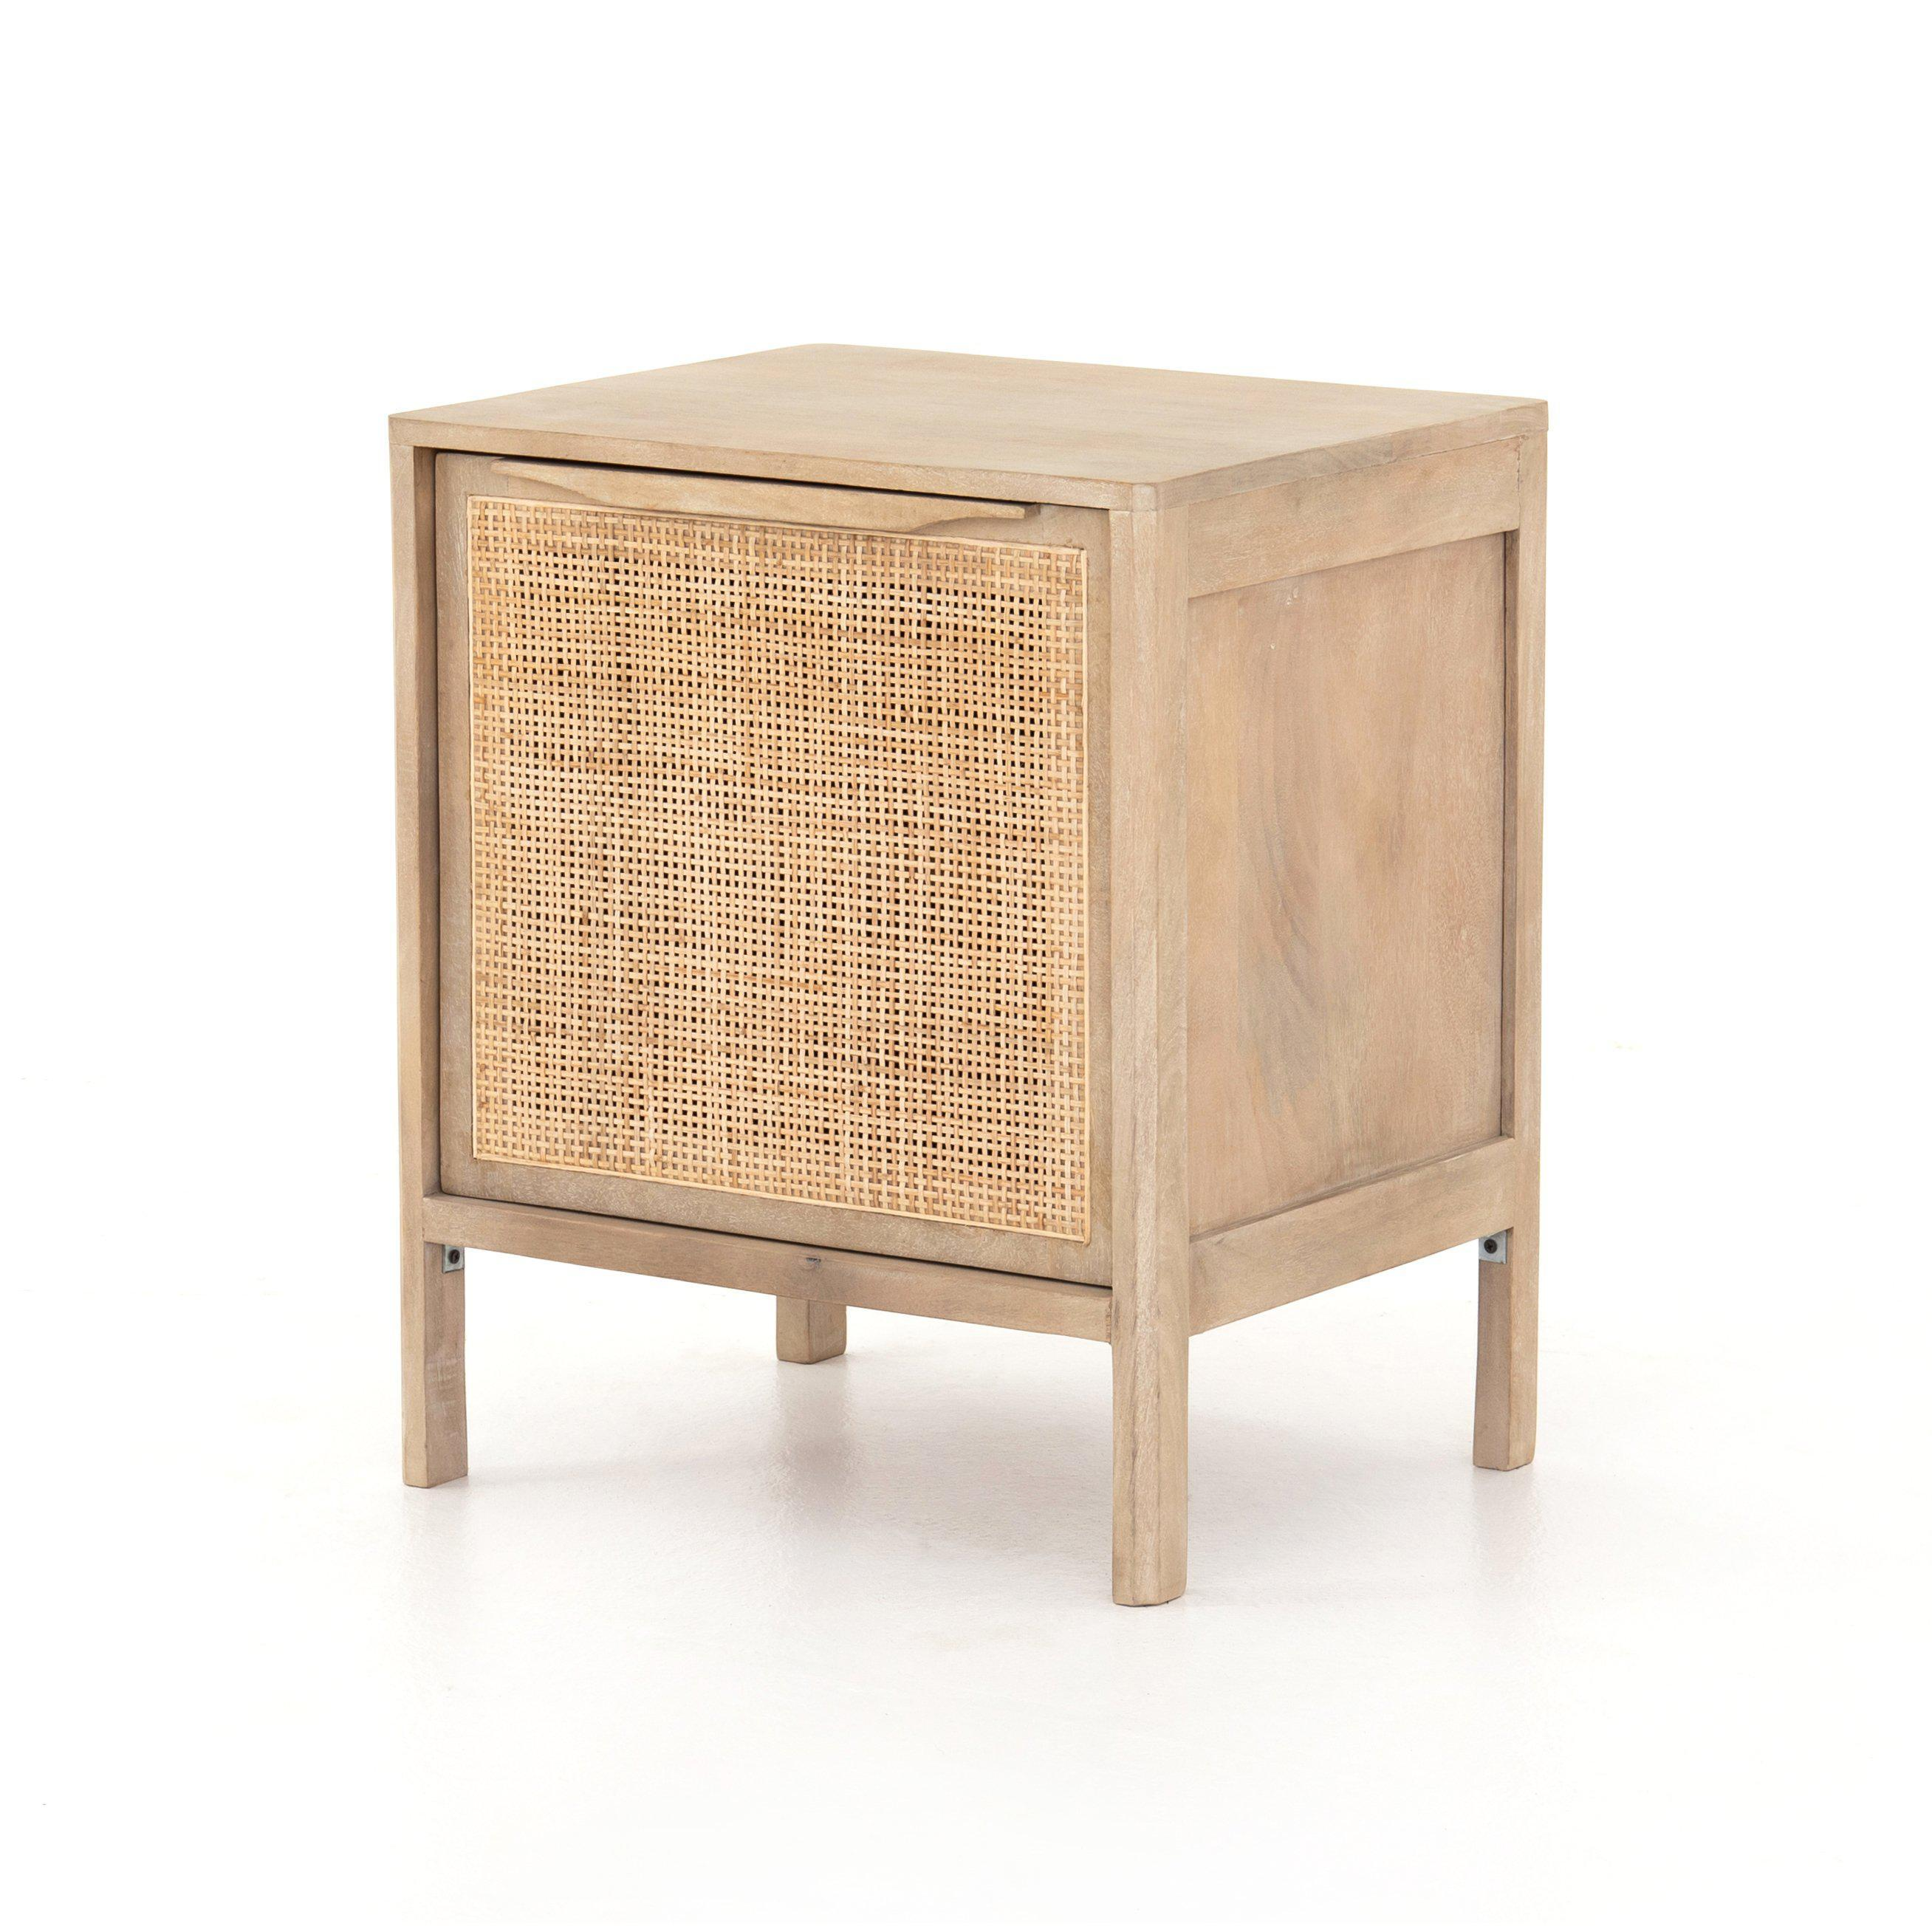 Sydney Woven Cane Nightstand (Natural) | Nightstand | parker-gwen